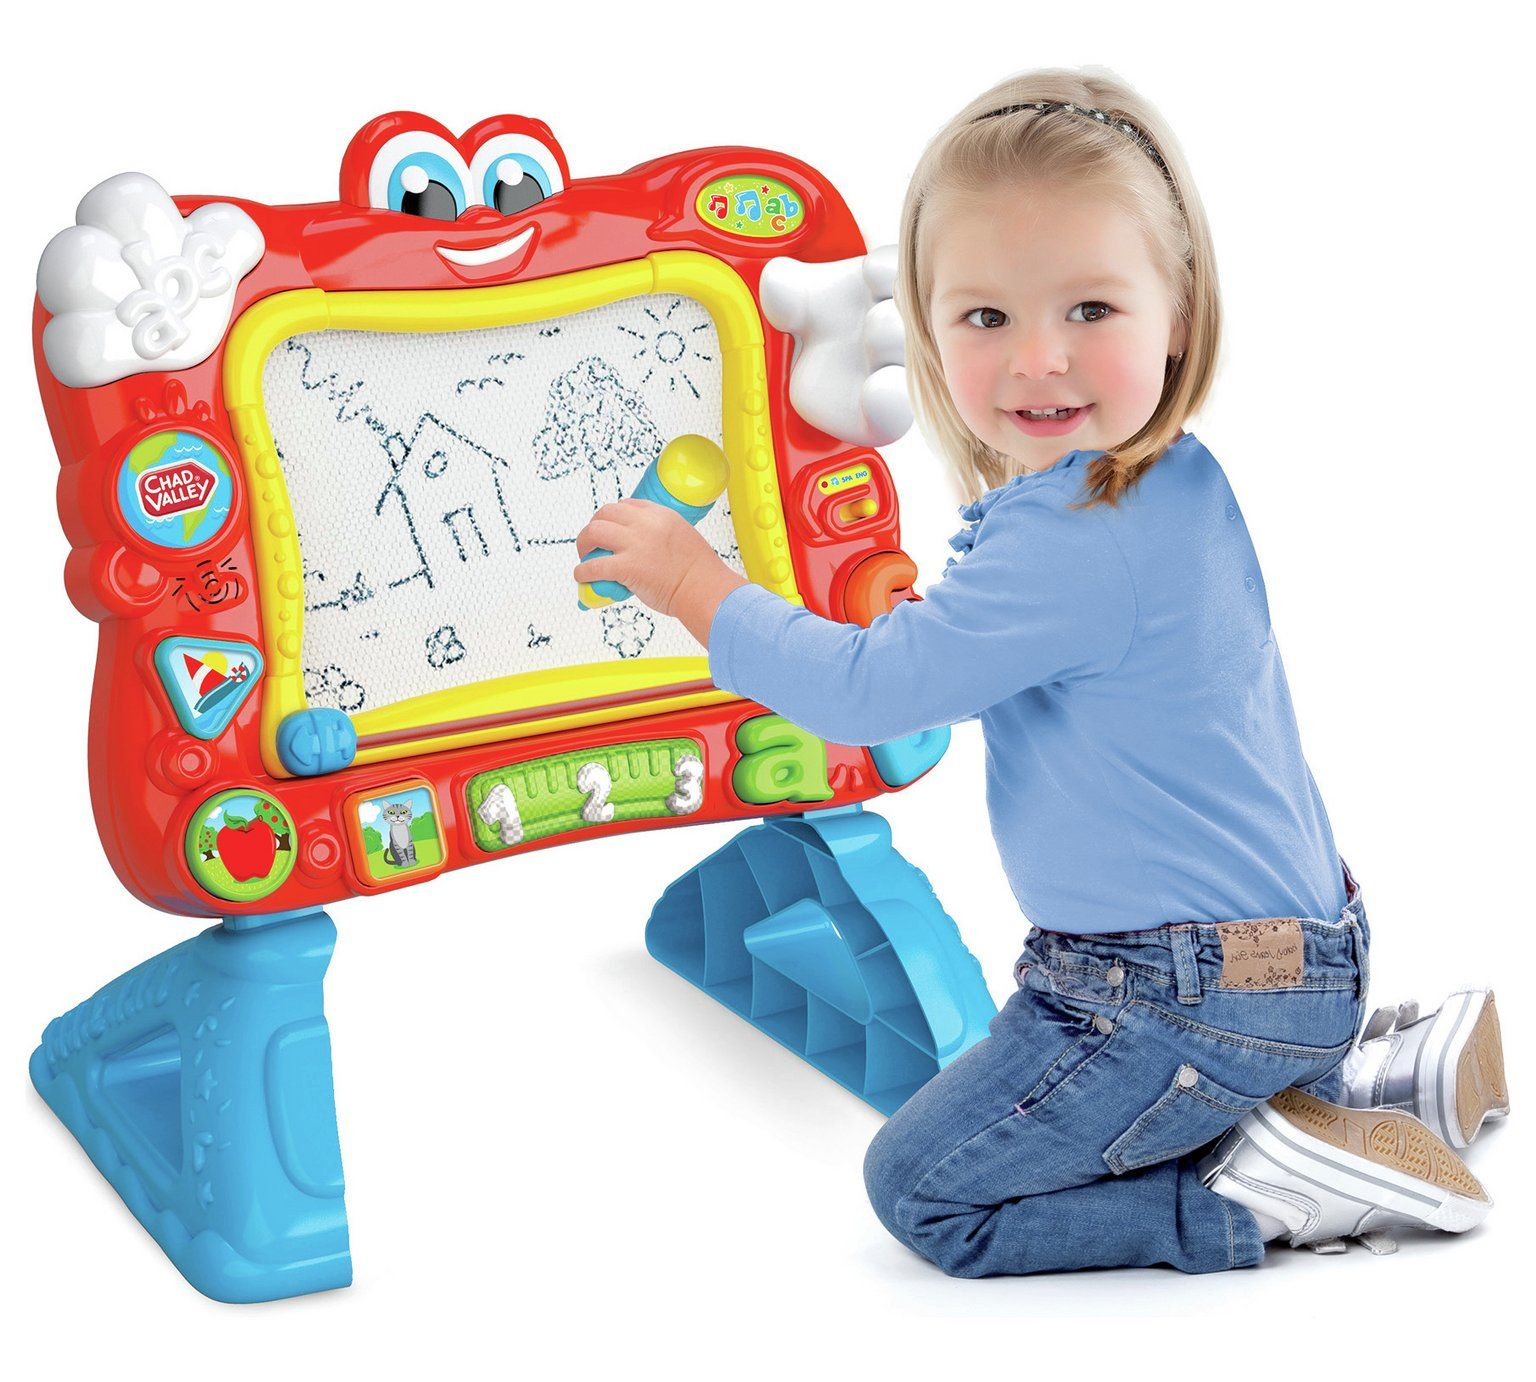 Buy Chad Valley PlaySmart Interactive Magnetic Easel at Argos